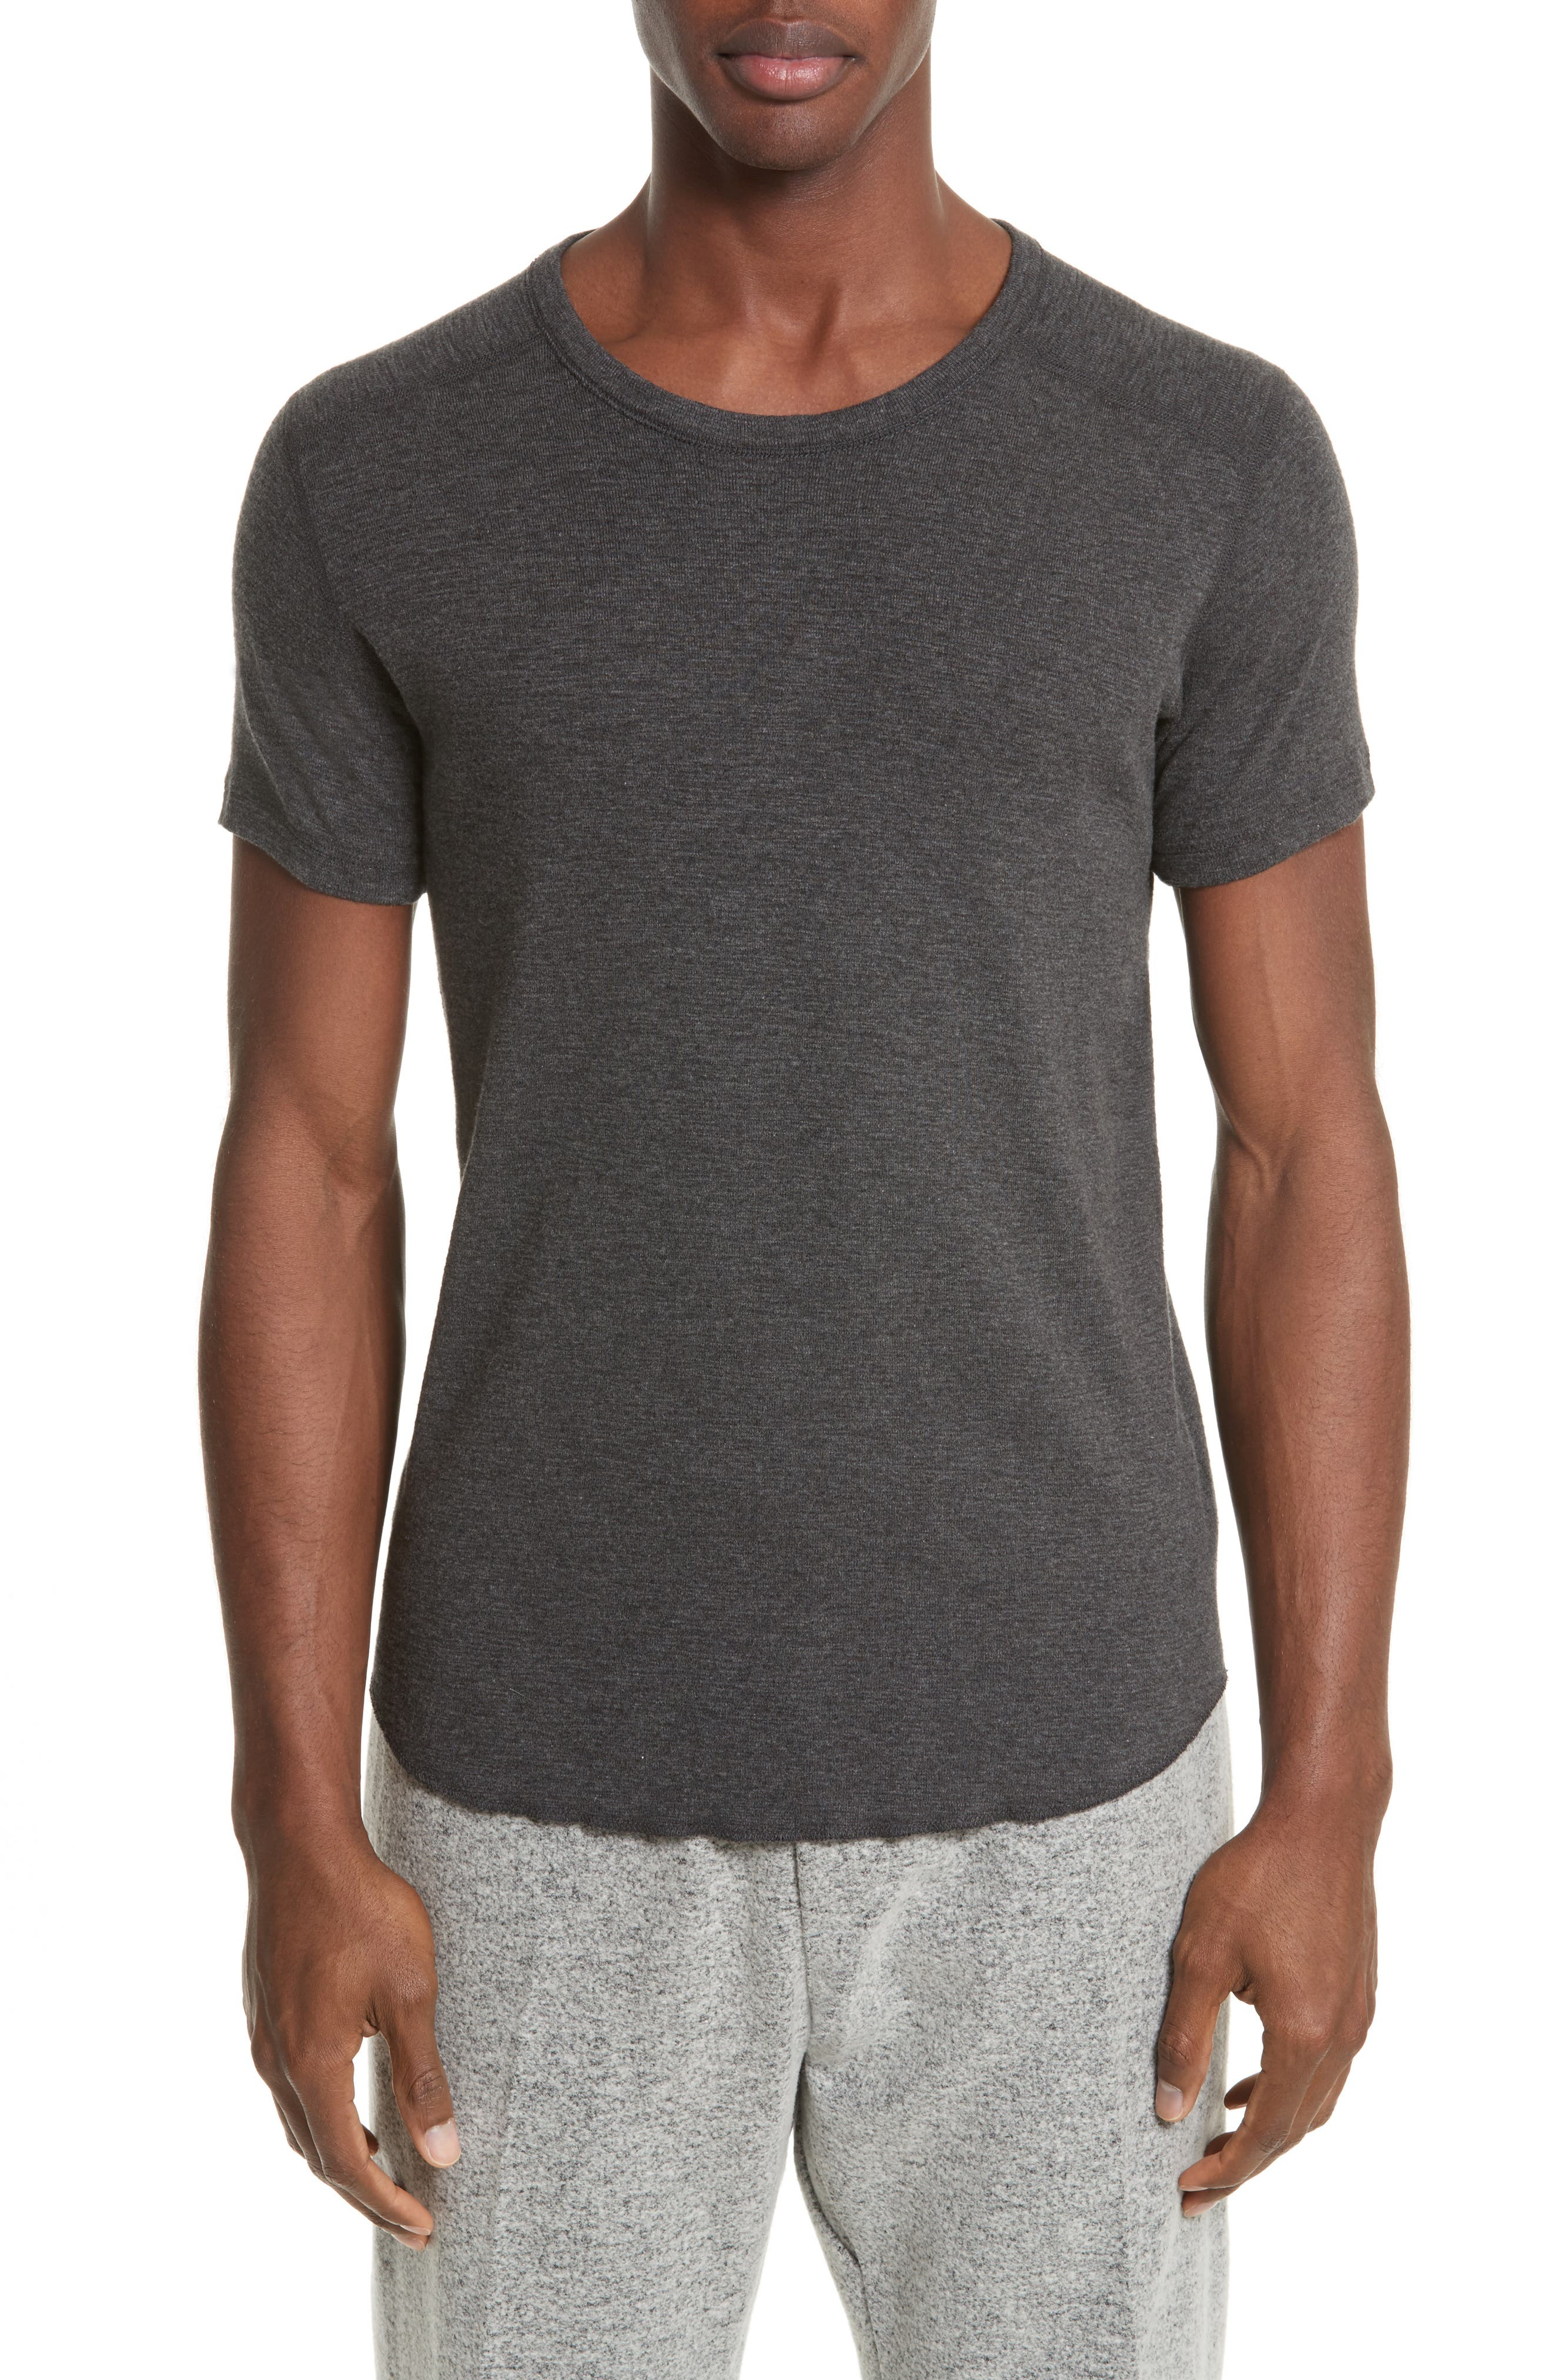 WINGS + HORNS, Ribbed Slub Cotton T-Shirt, Main thumbnail 1, color, HEATHER CHARCOAL